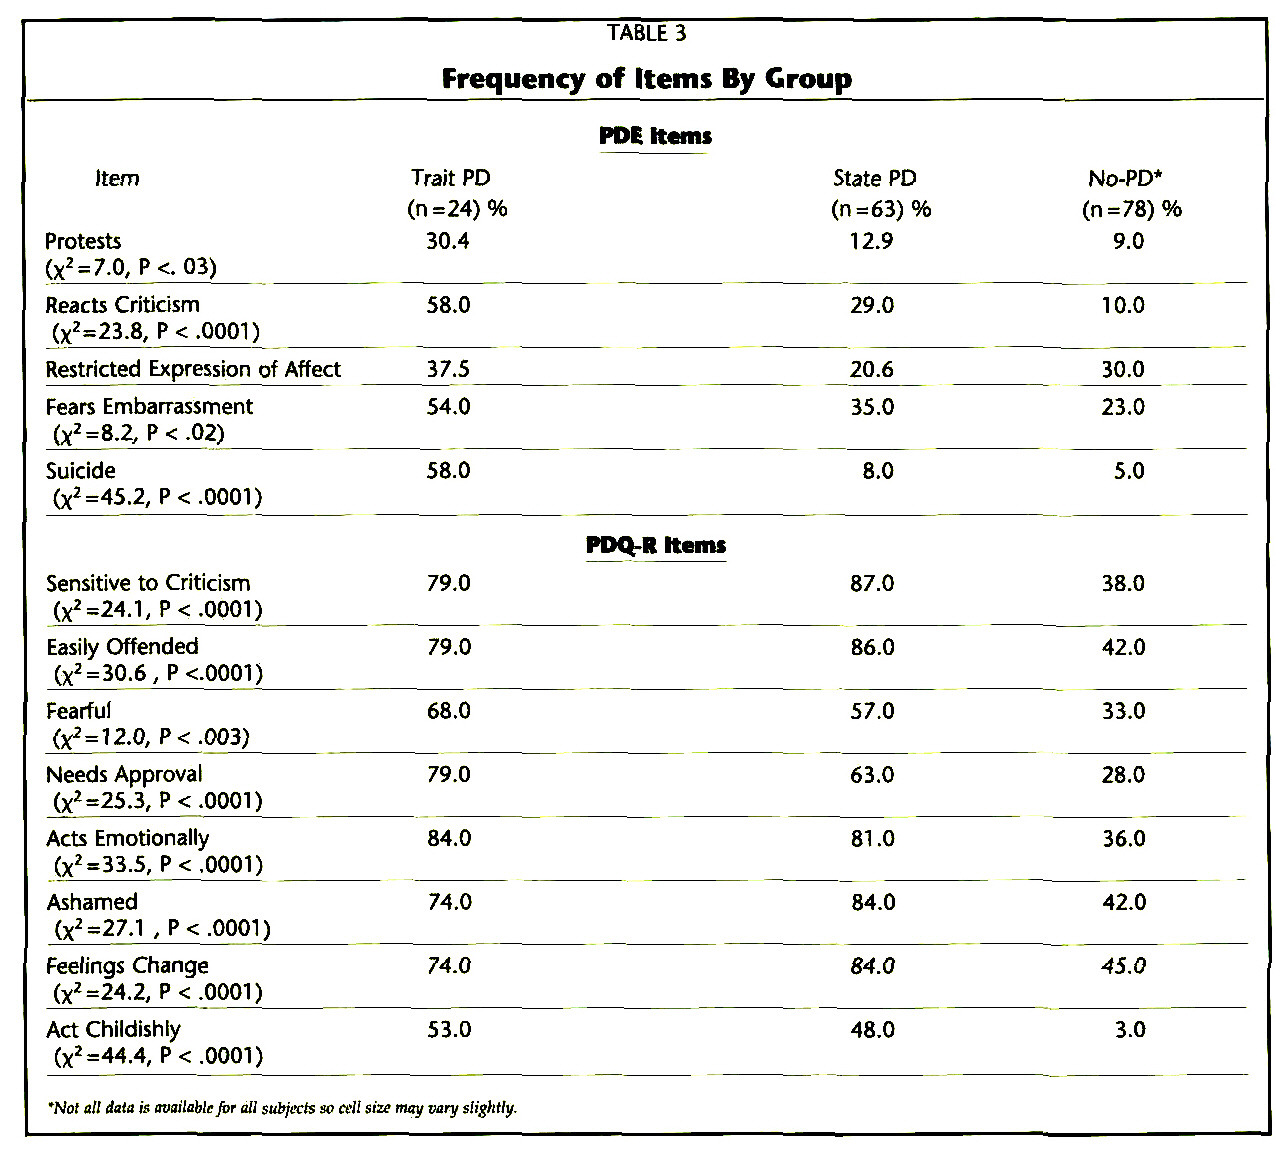 TABLE 3Frequency of Items By Group